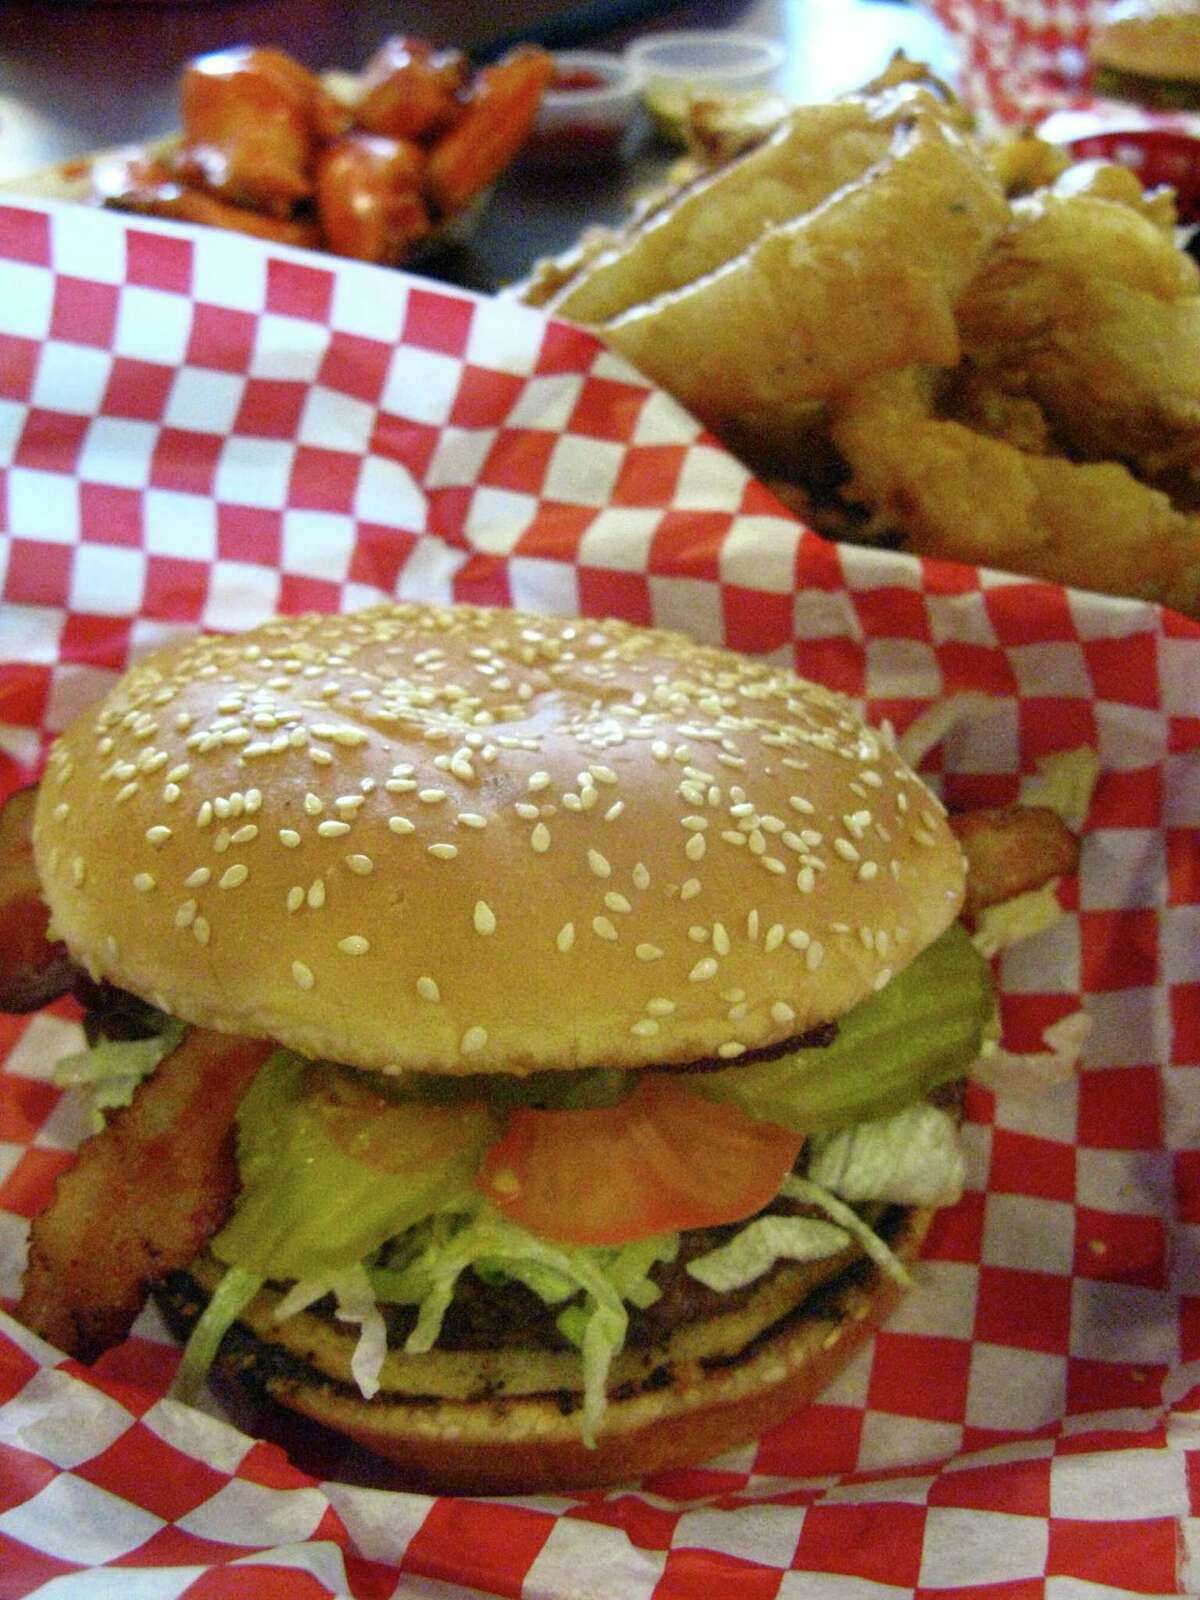 Big Bobs Burgers, 447 W. Hildebrand Ave., 210-734-2627, is smoking 15-pound turkeys for Christmas that will feed four to six and are available for pick up. Turkeys are fully cooked and can be reheated in 1½ hours, $39.95. bigbobsburgers.com